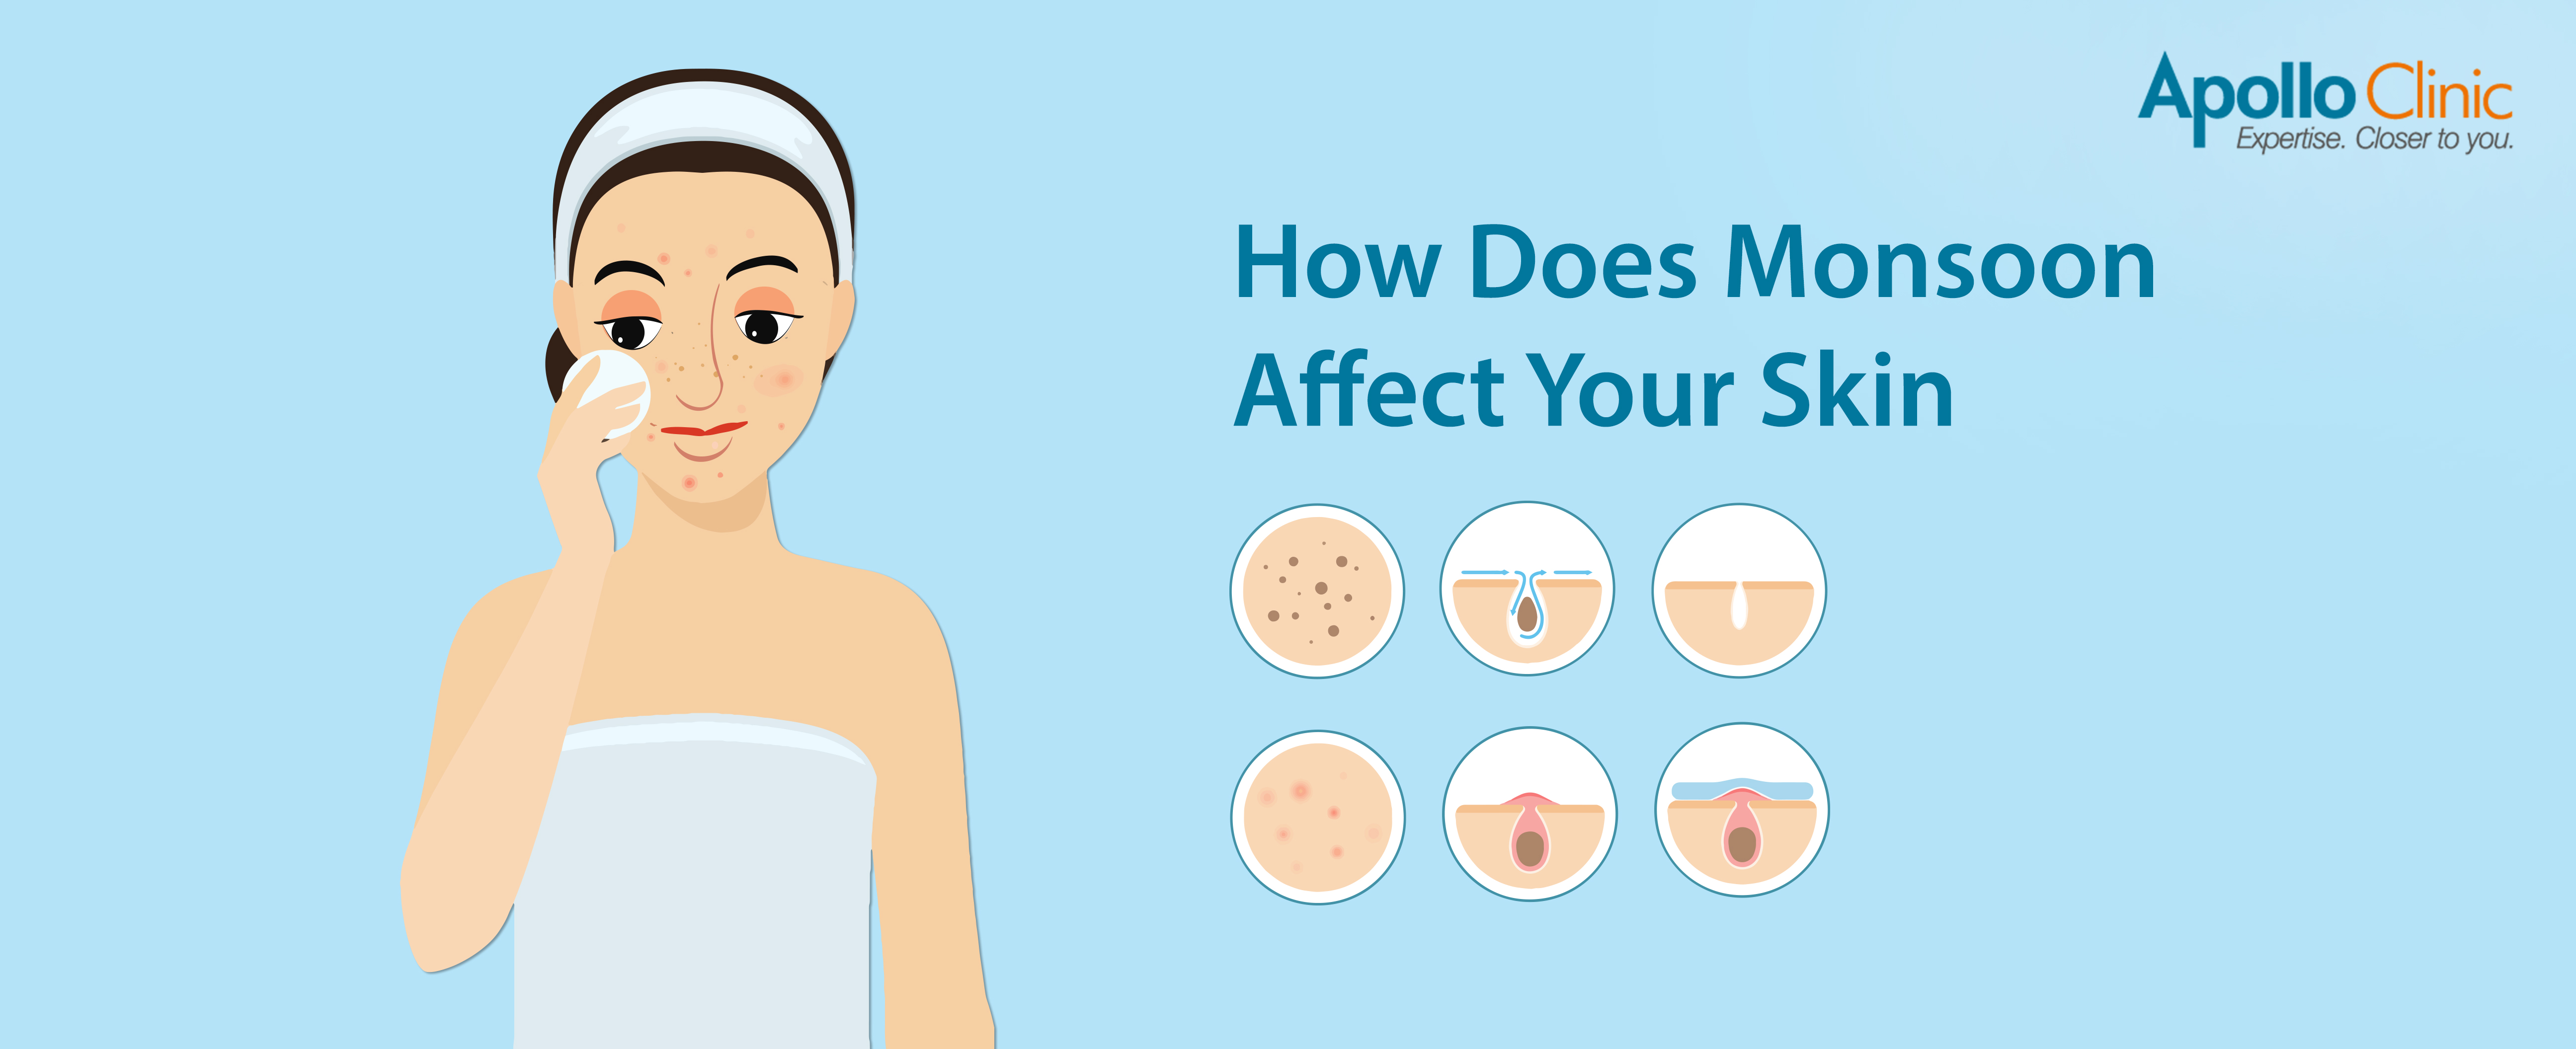 How Does Monsoon Affect Your Skin - Apollo Clinic Blog